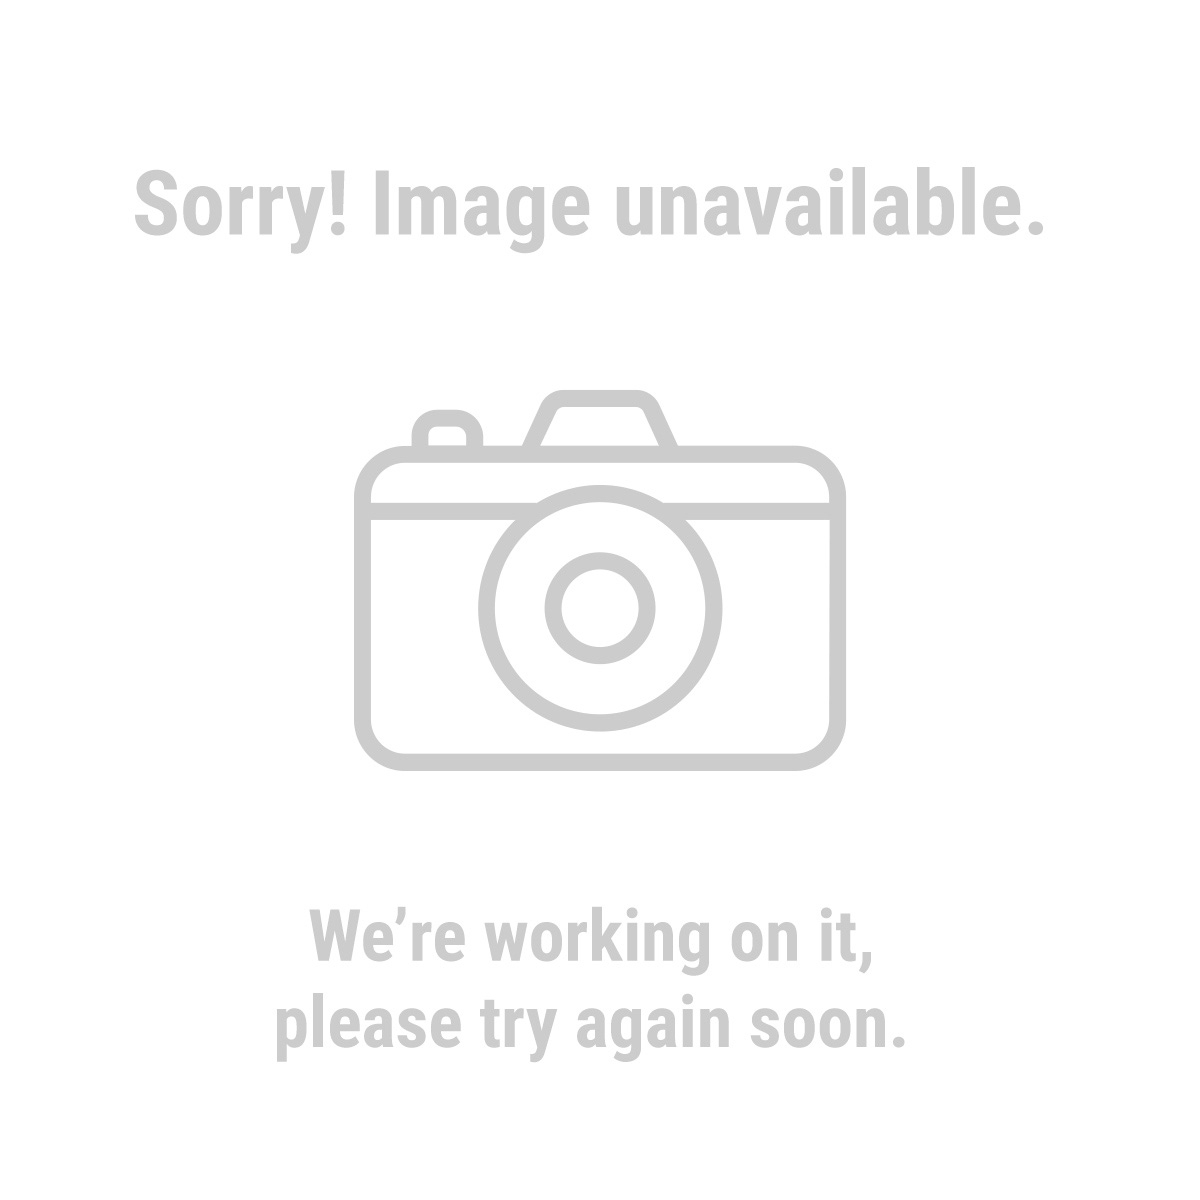 Greenwood 95692 1-1/4 Gallon Sprayer